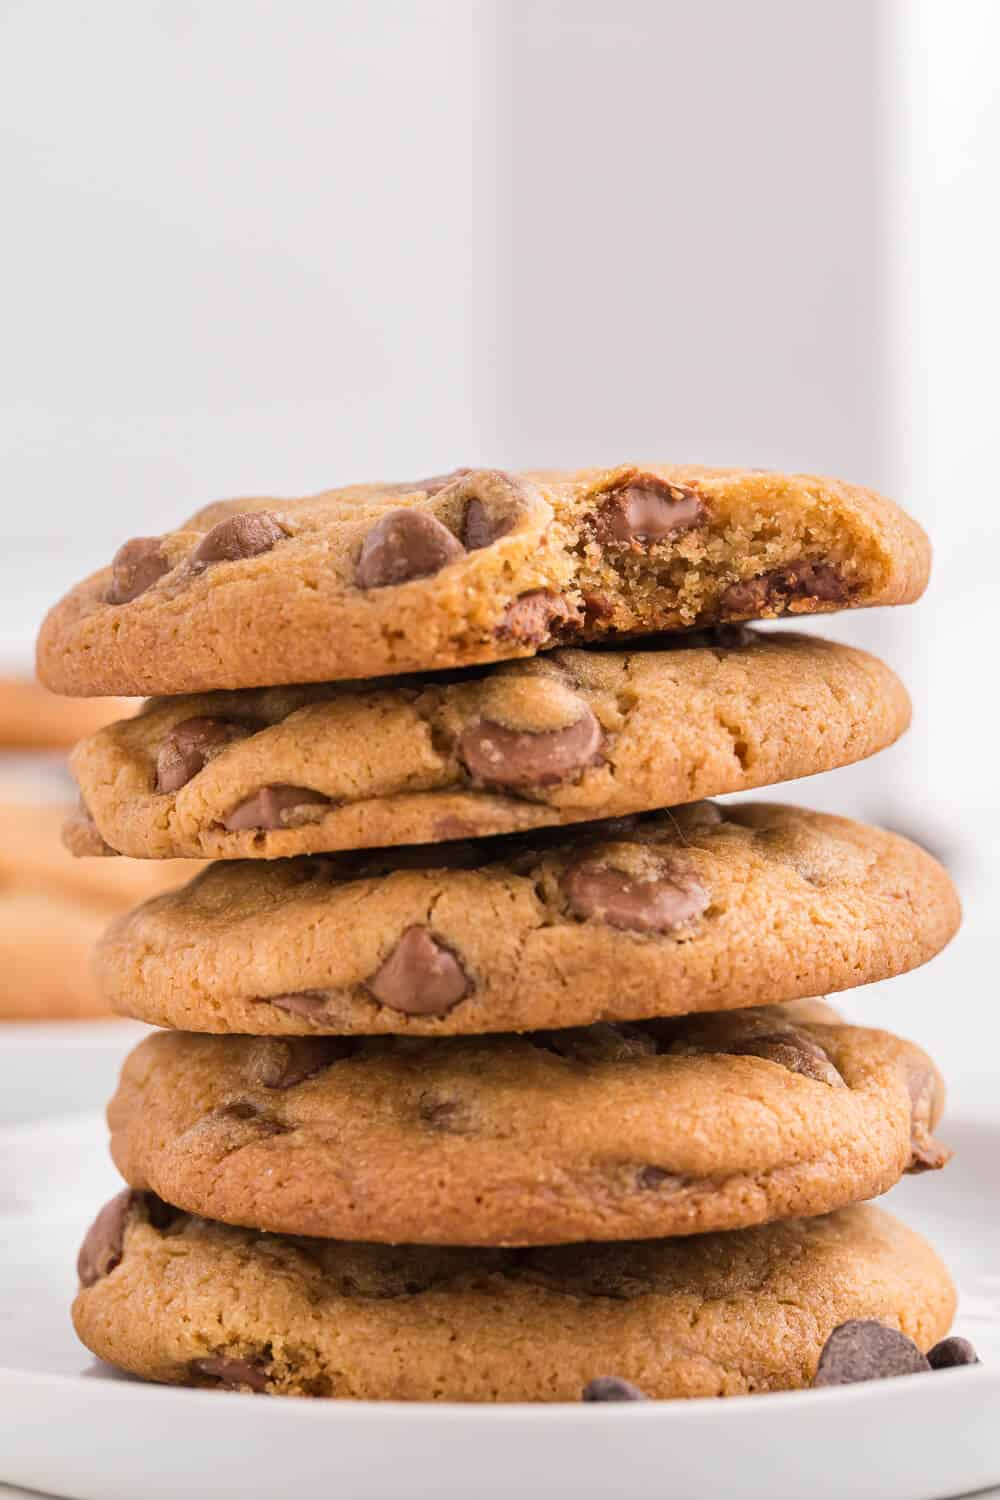 A stack of 5 chocolate chip cookies